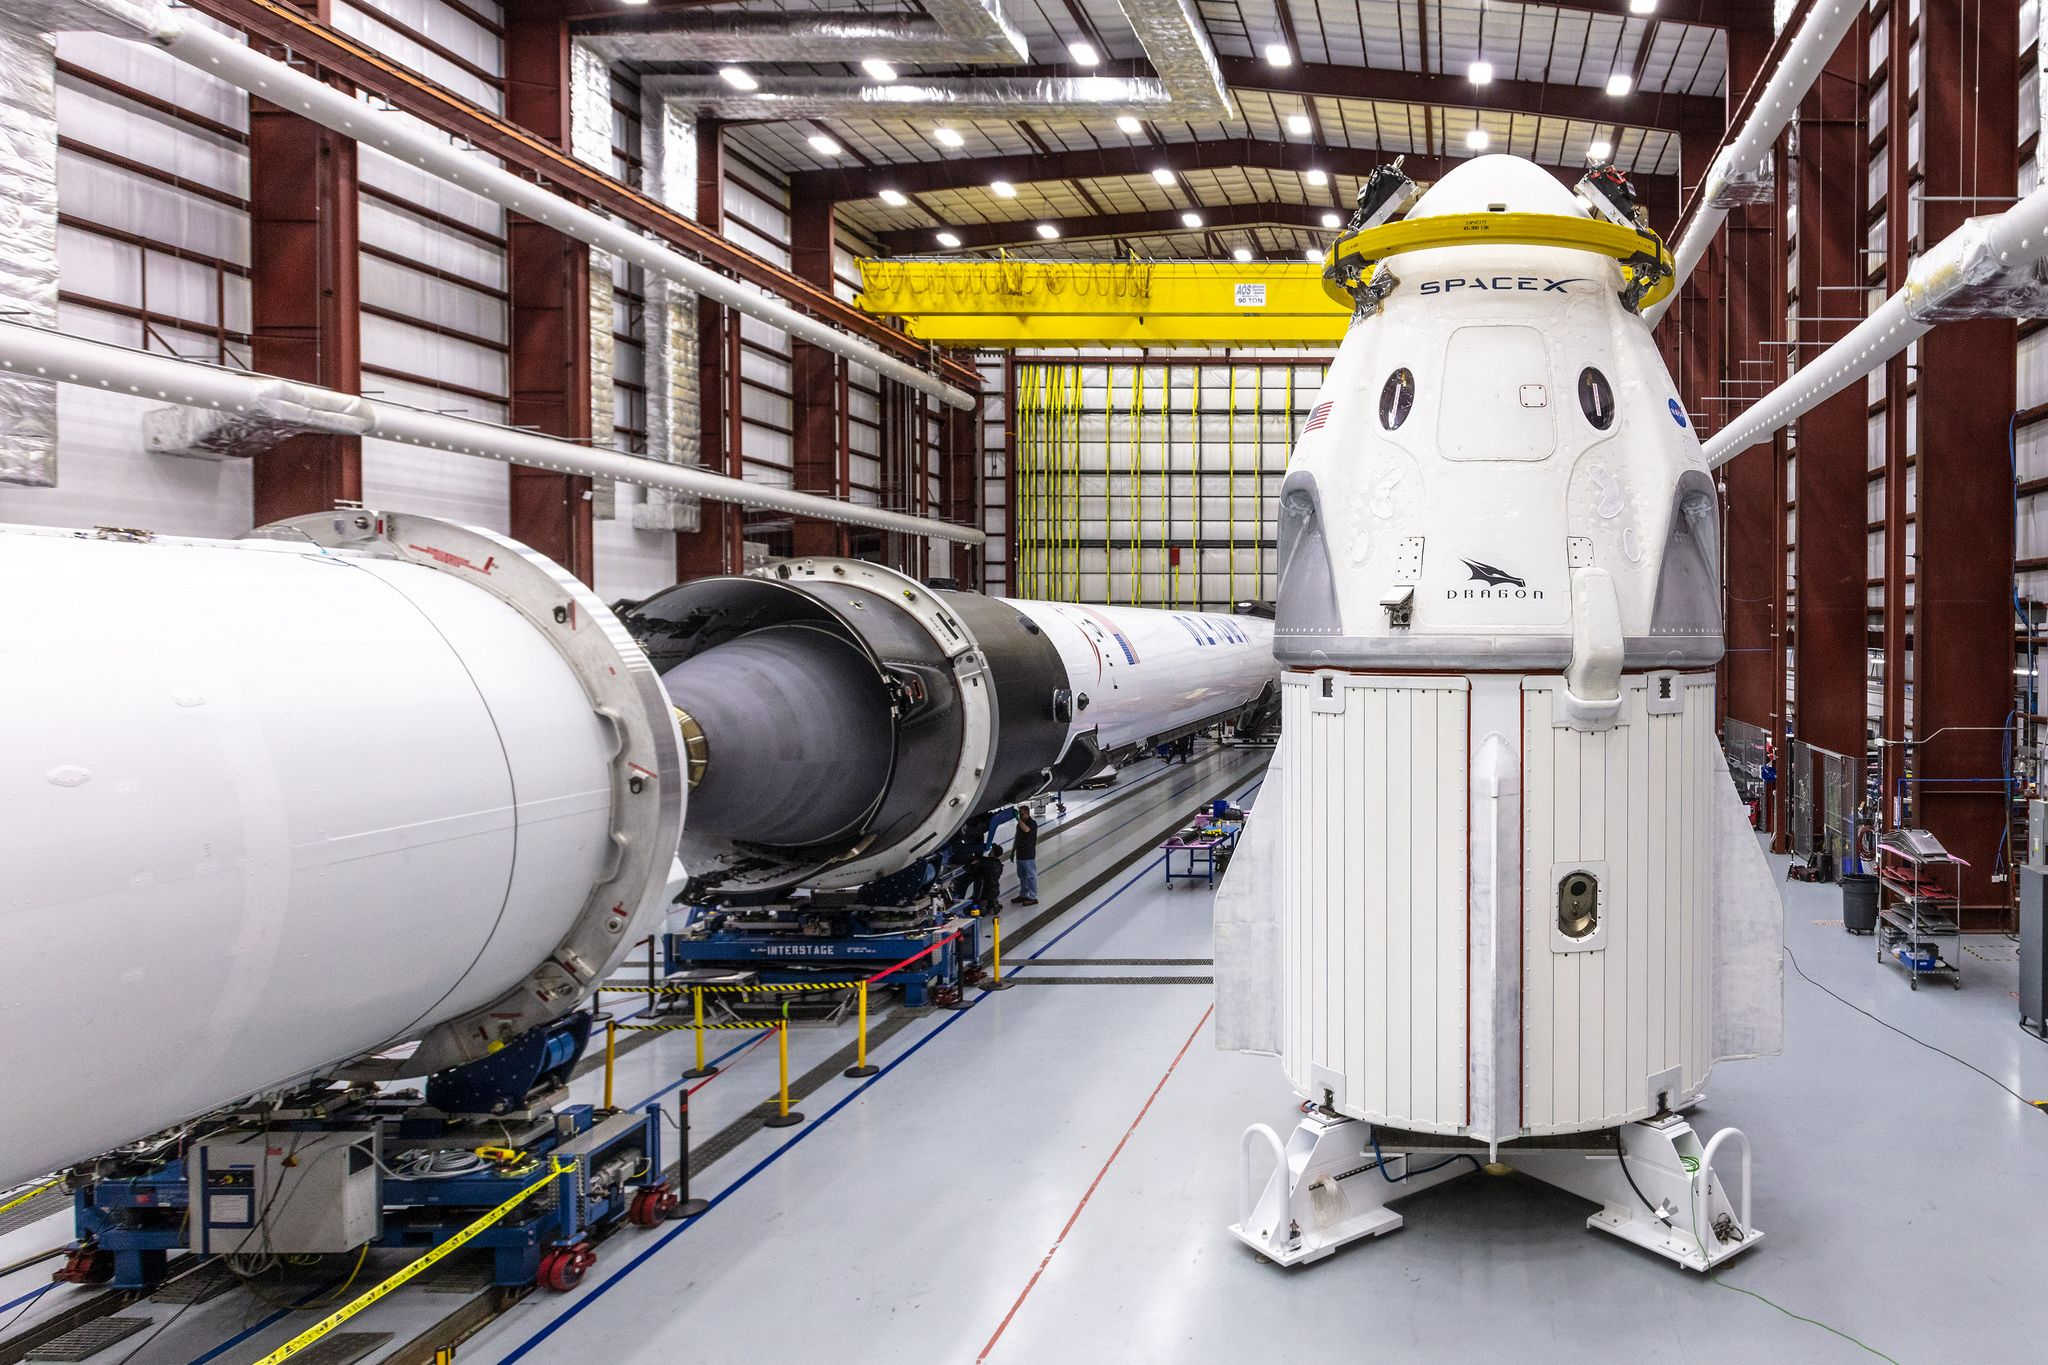 Crew Dragon capsule 'destroyed' during testing in Florida